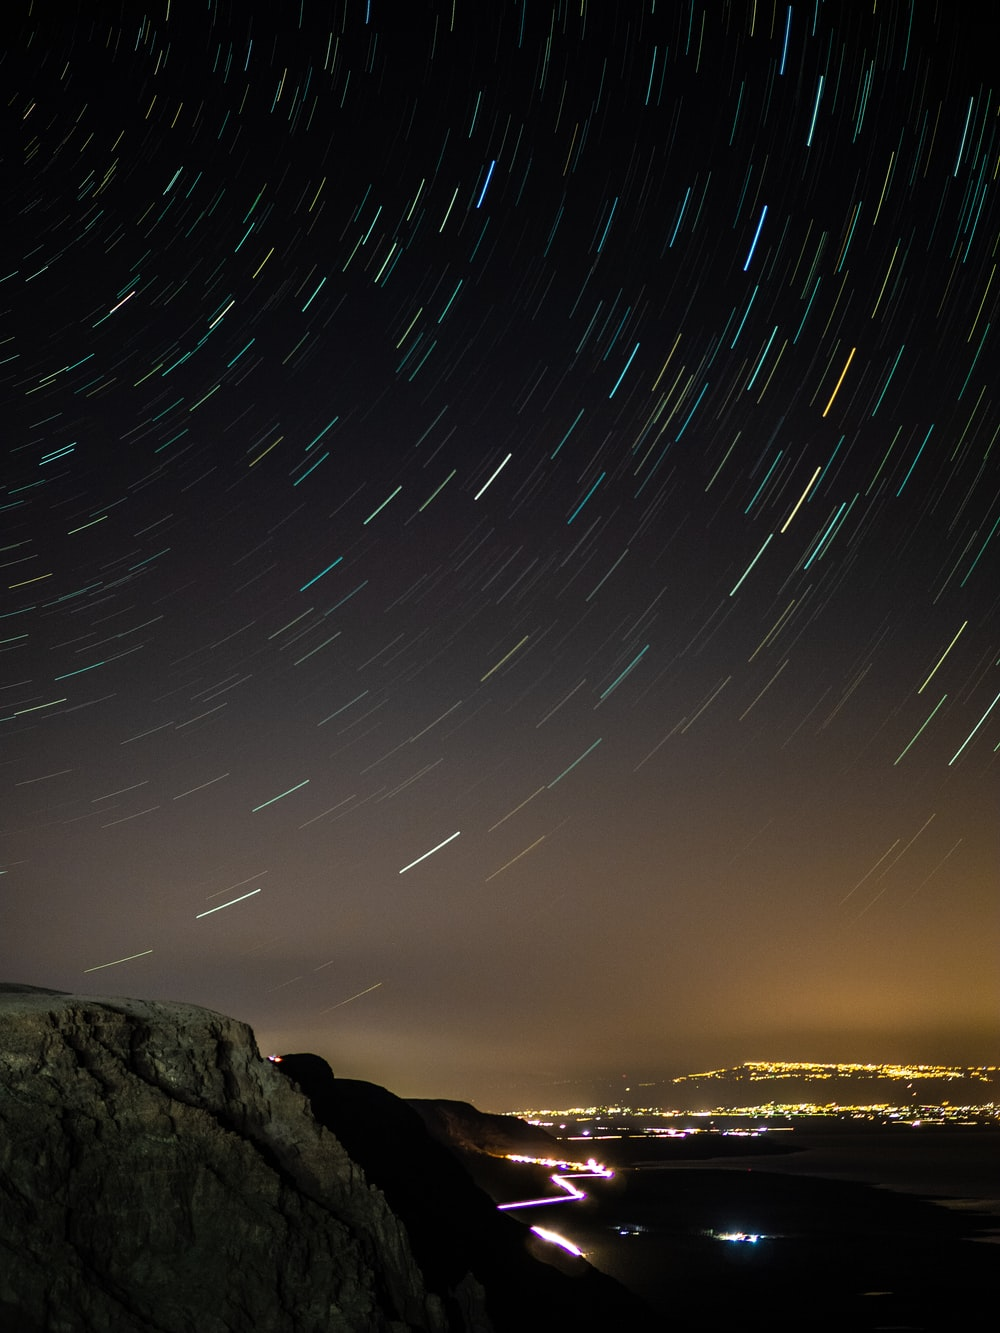 time lapse photography of stars above the sky during night time